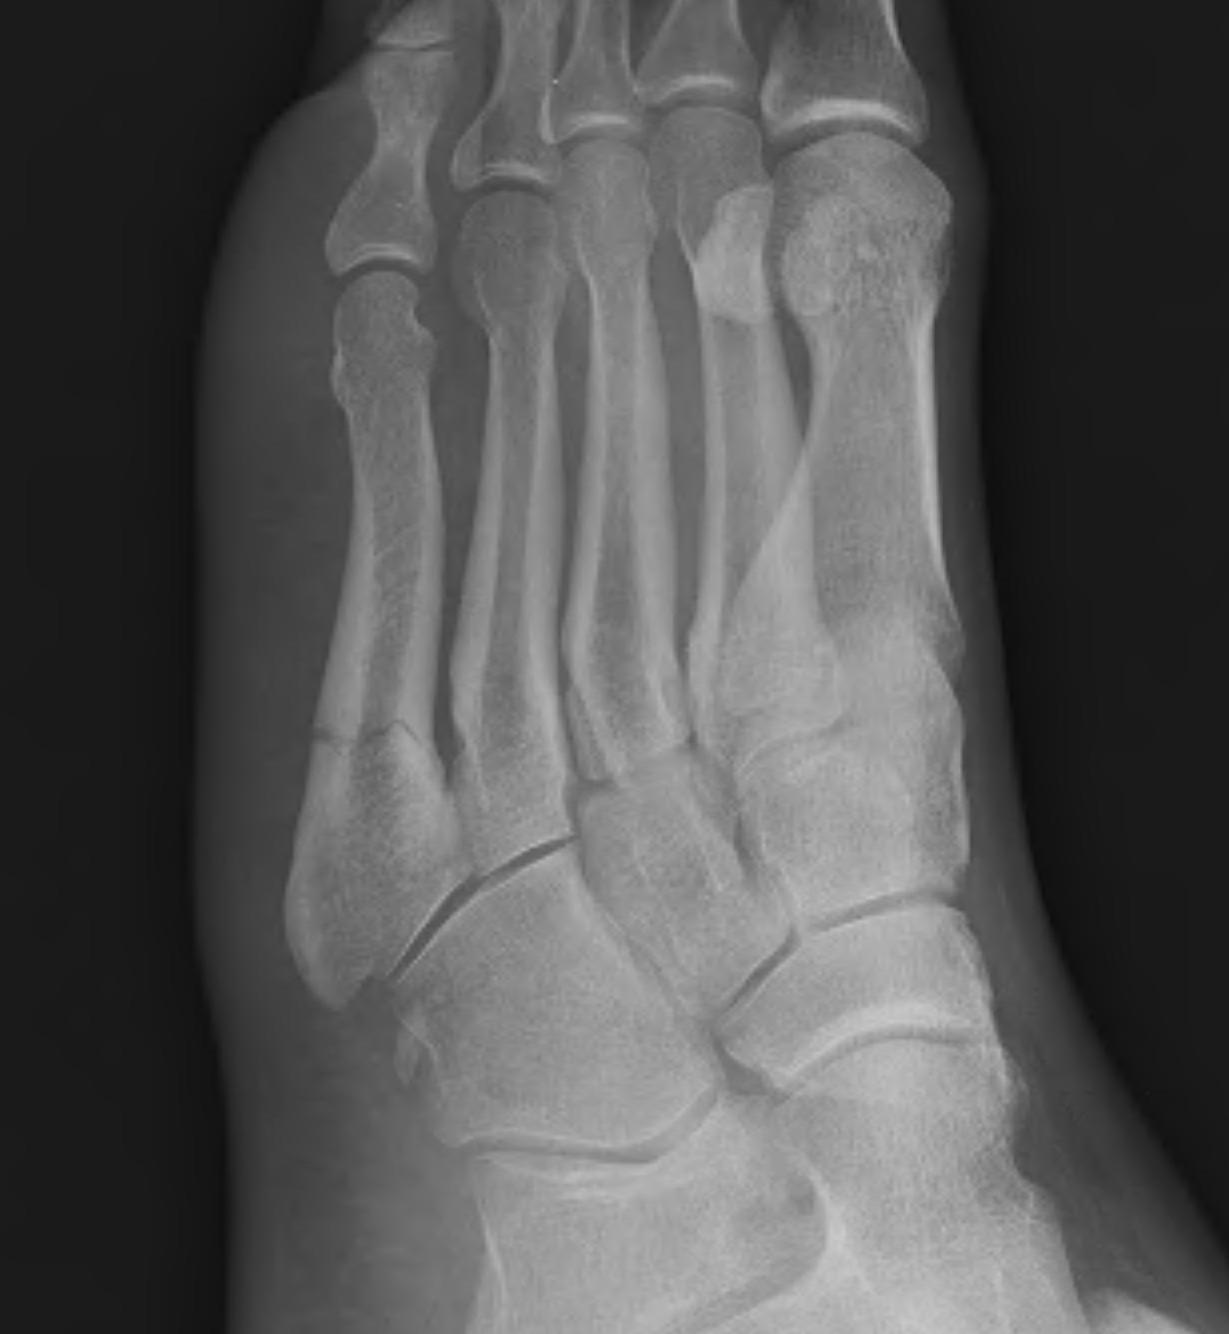 Base of 5th Metatarsal Fracture Zone 2